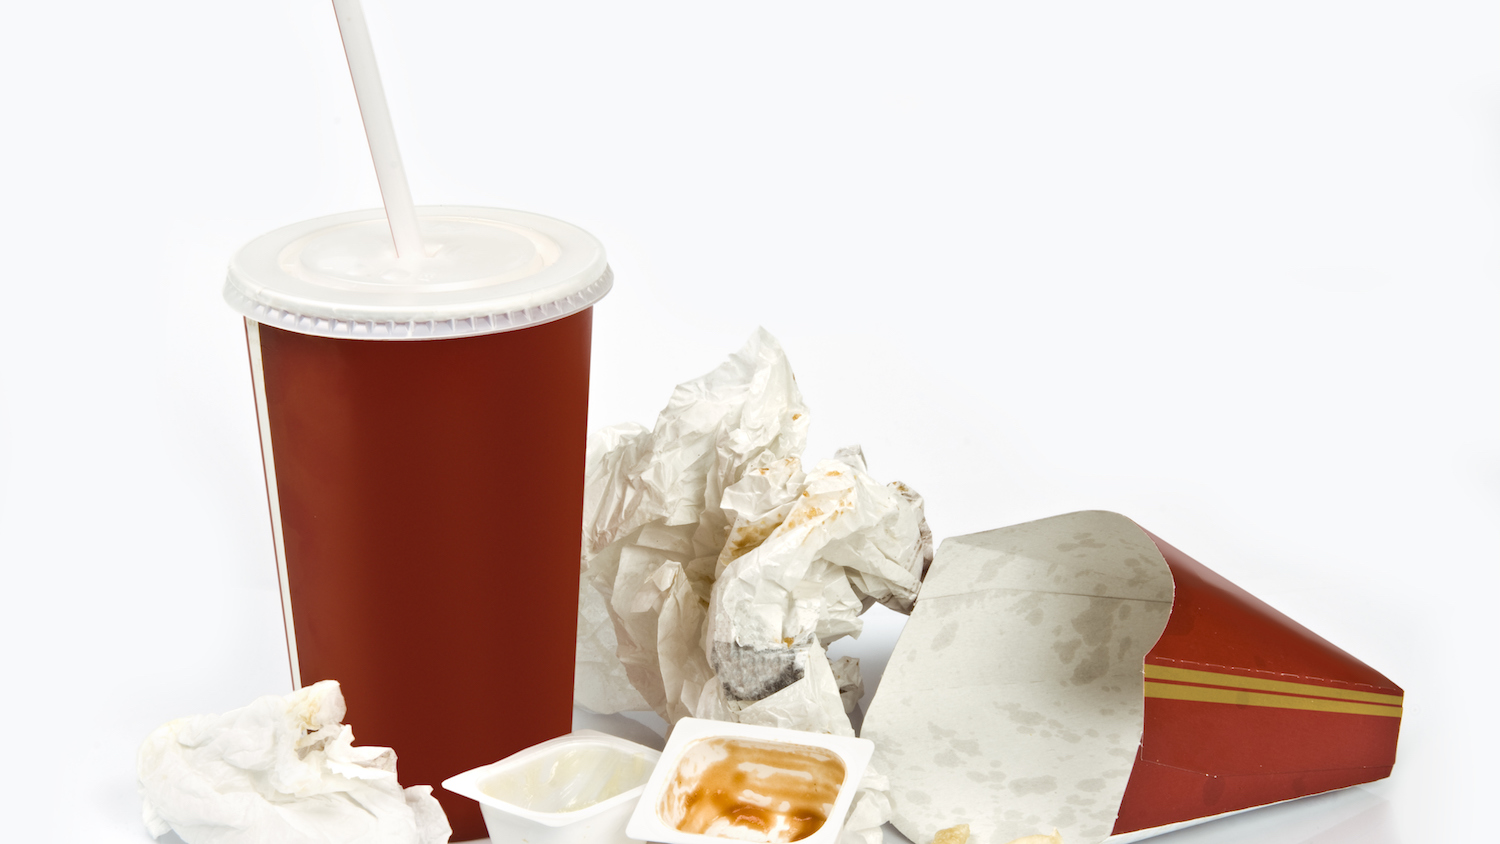 Fast food packaging investigation